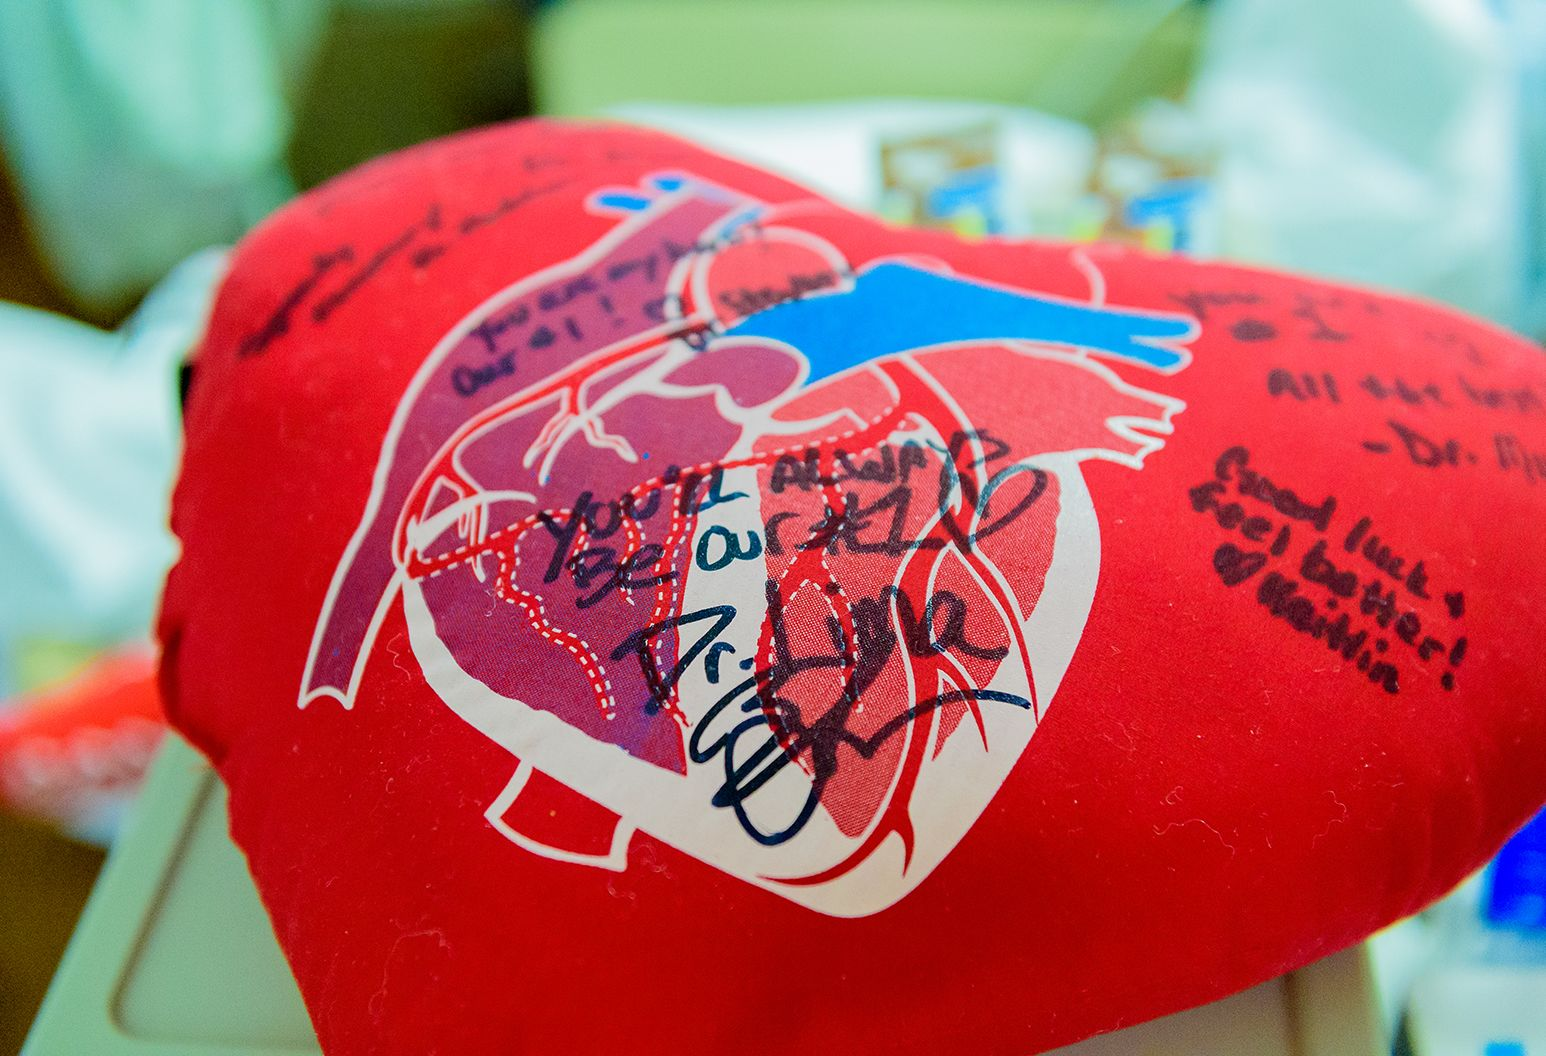 This is an image of a red, heart shaped pillow with an illustration of a human heart on the front. There is also writing on the pillow in black ink.